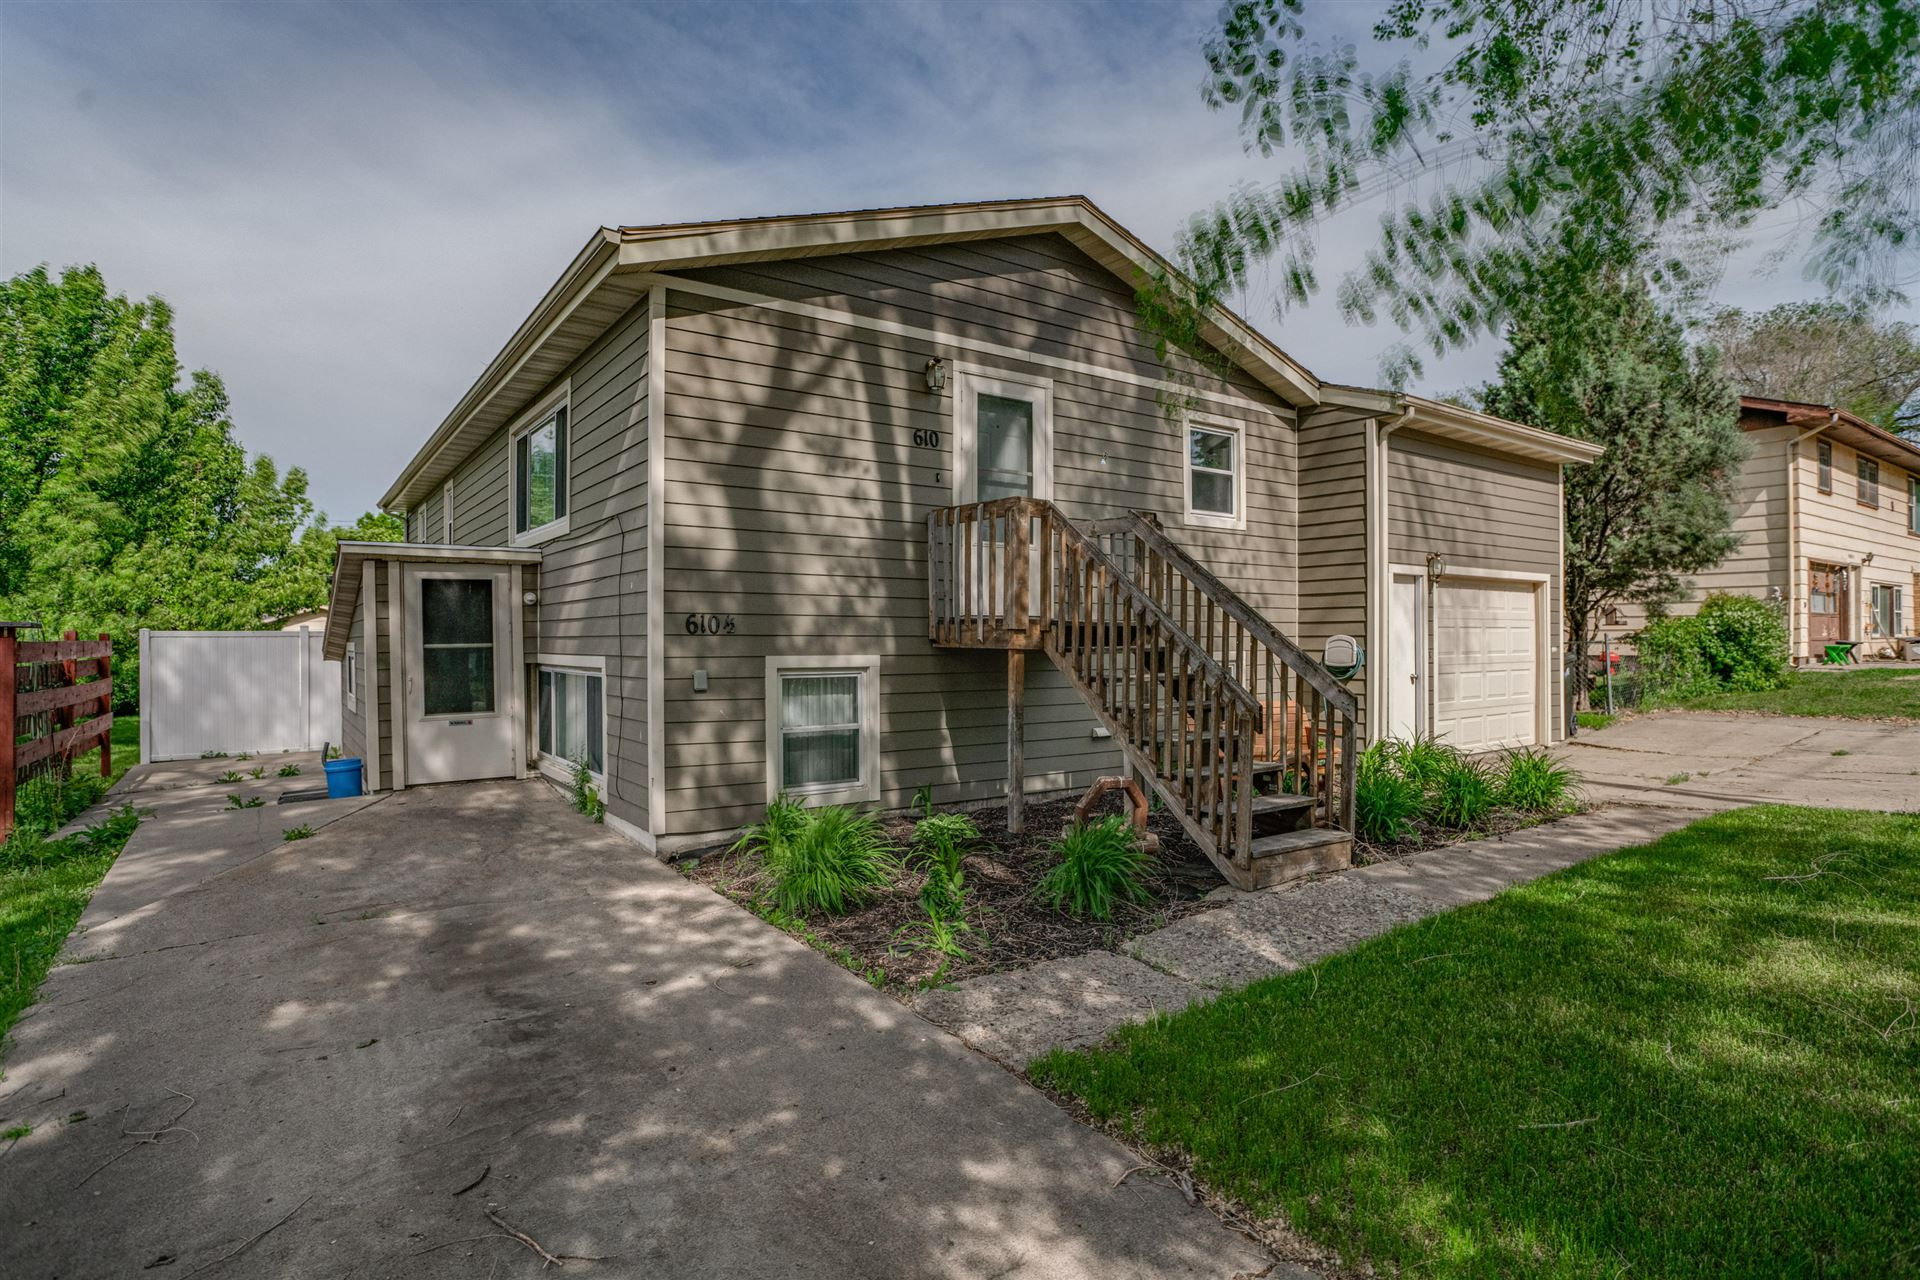 610 S 12th Street, Bismarck, ND 58504 - #: 408922